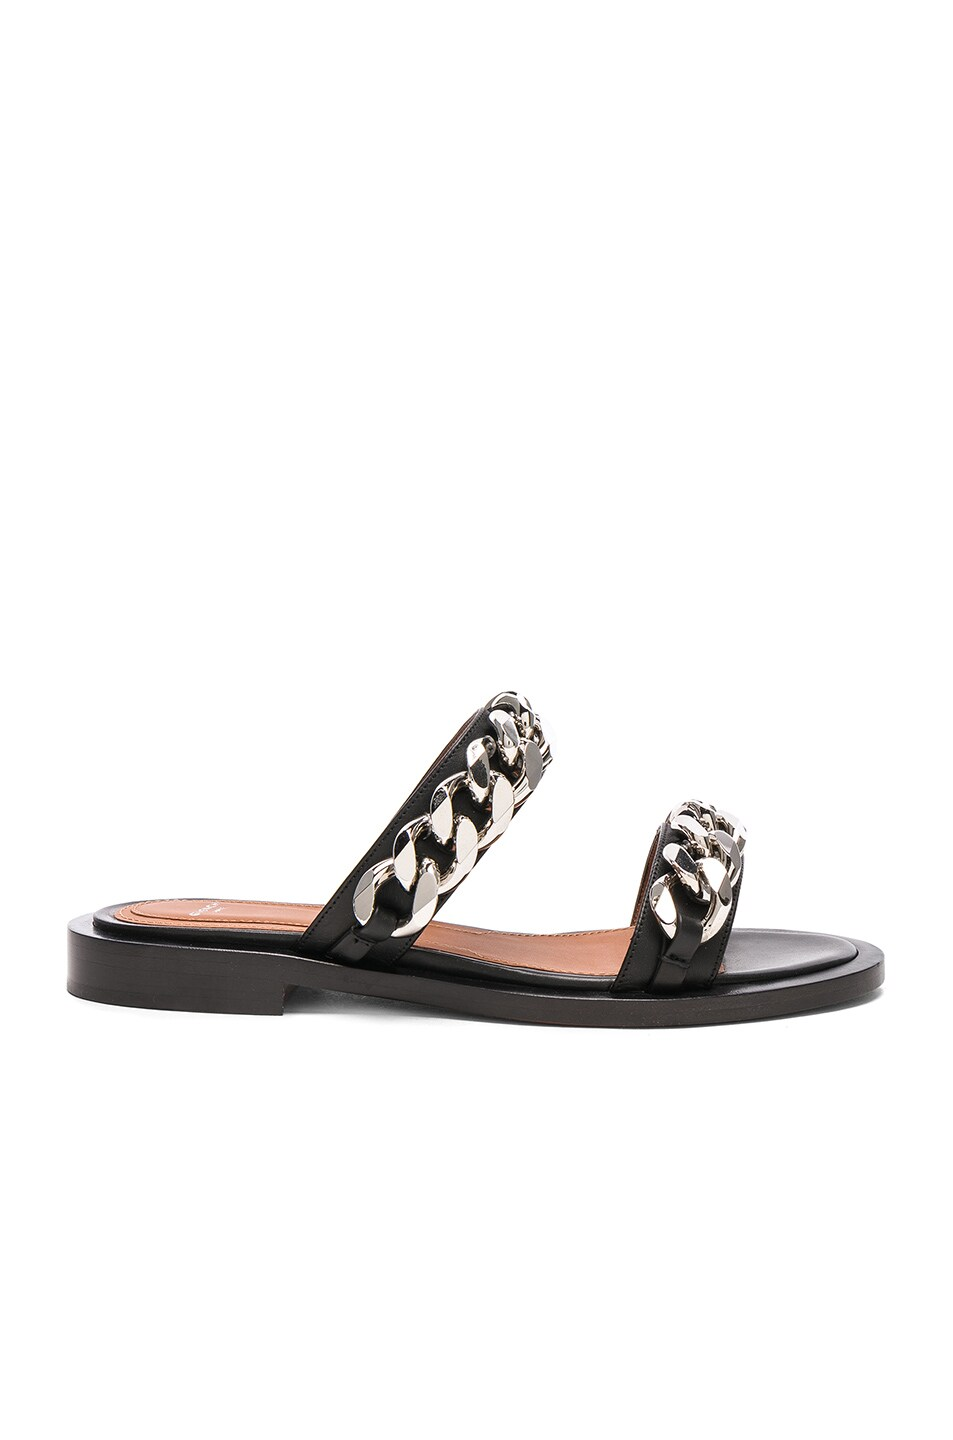 Givenchy Leather Two Strap Chain Flat Sandals in . Dqpli9WlbS